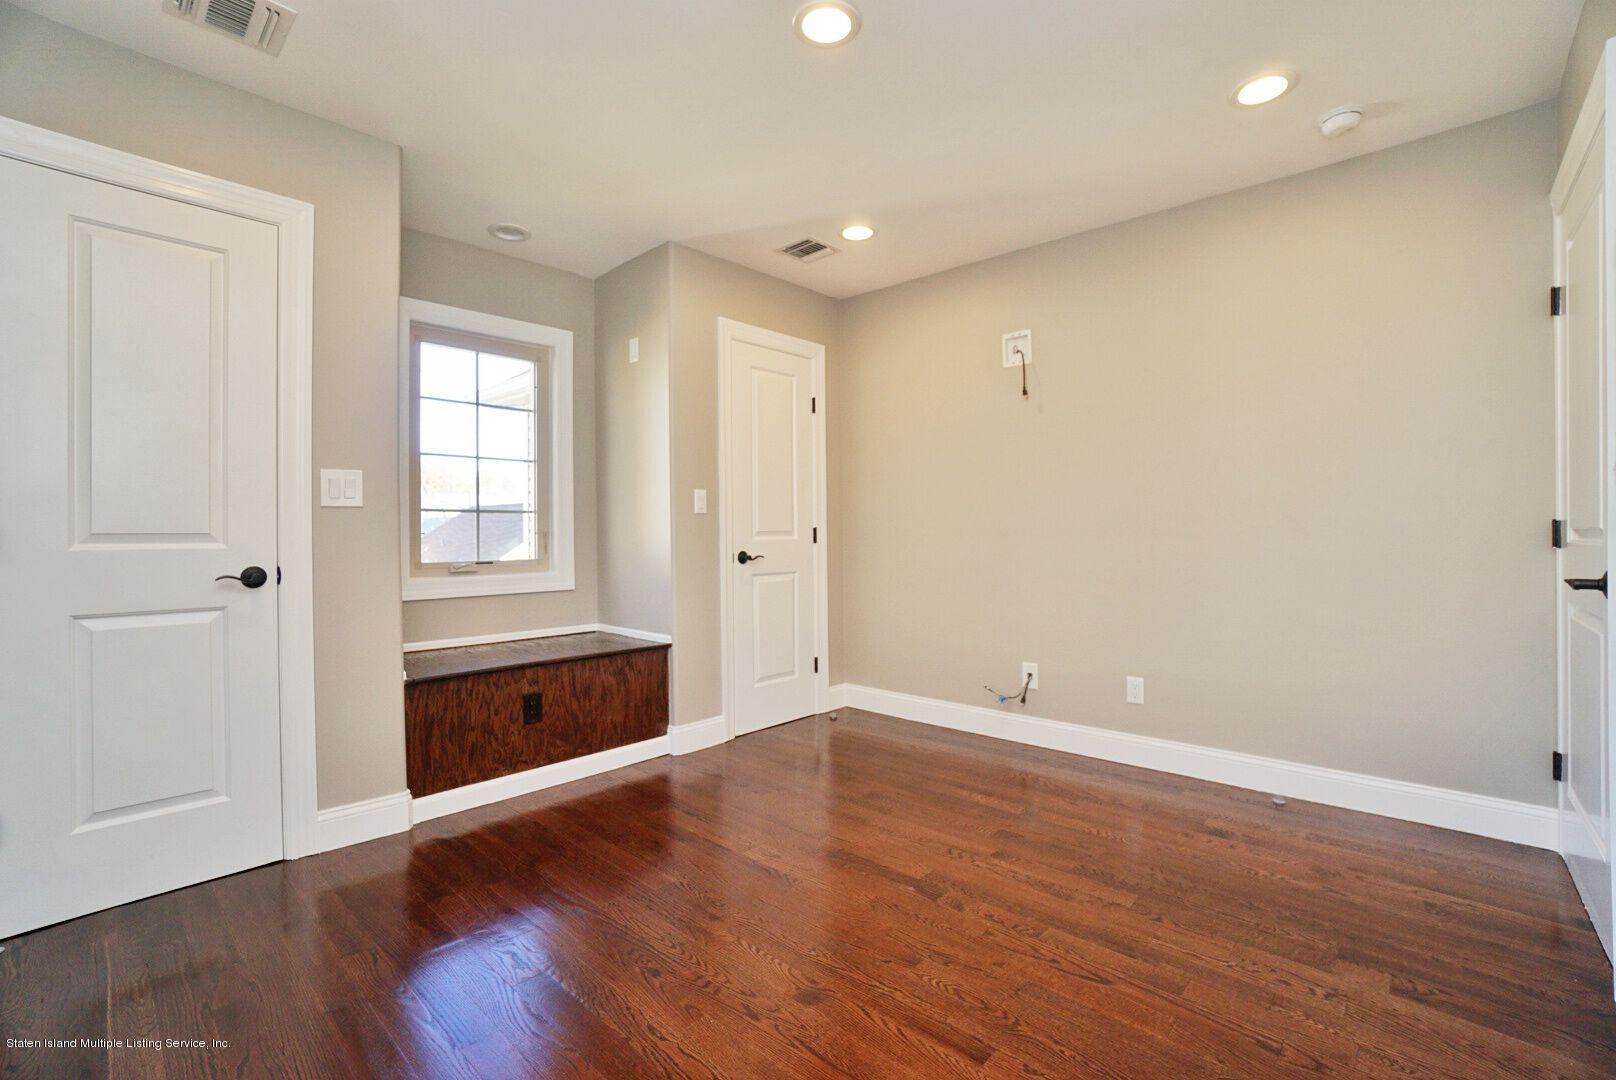 Single Family - Detached 165 Woolley Avenue  Staten Island, NY 10314, MLS-1128875-45